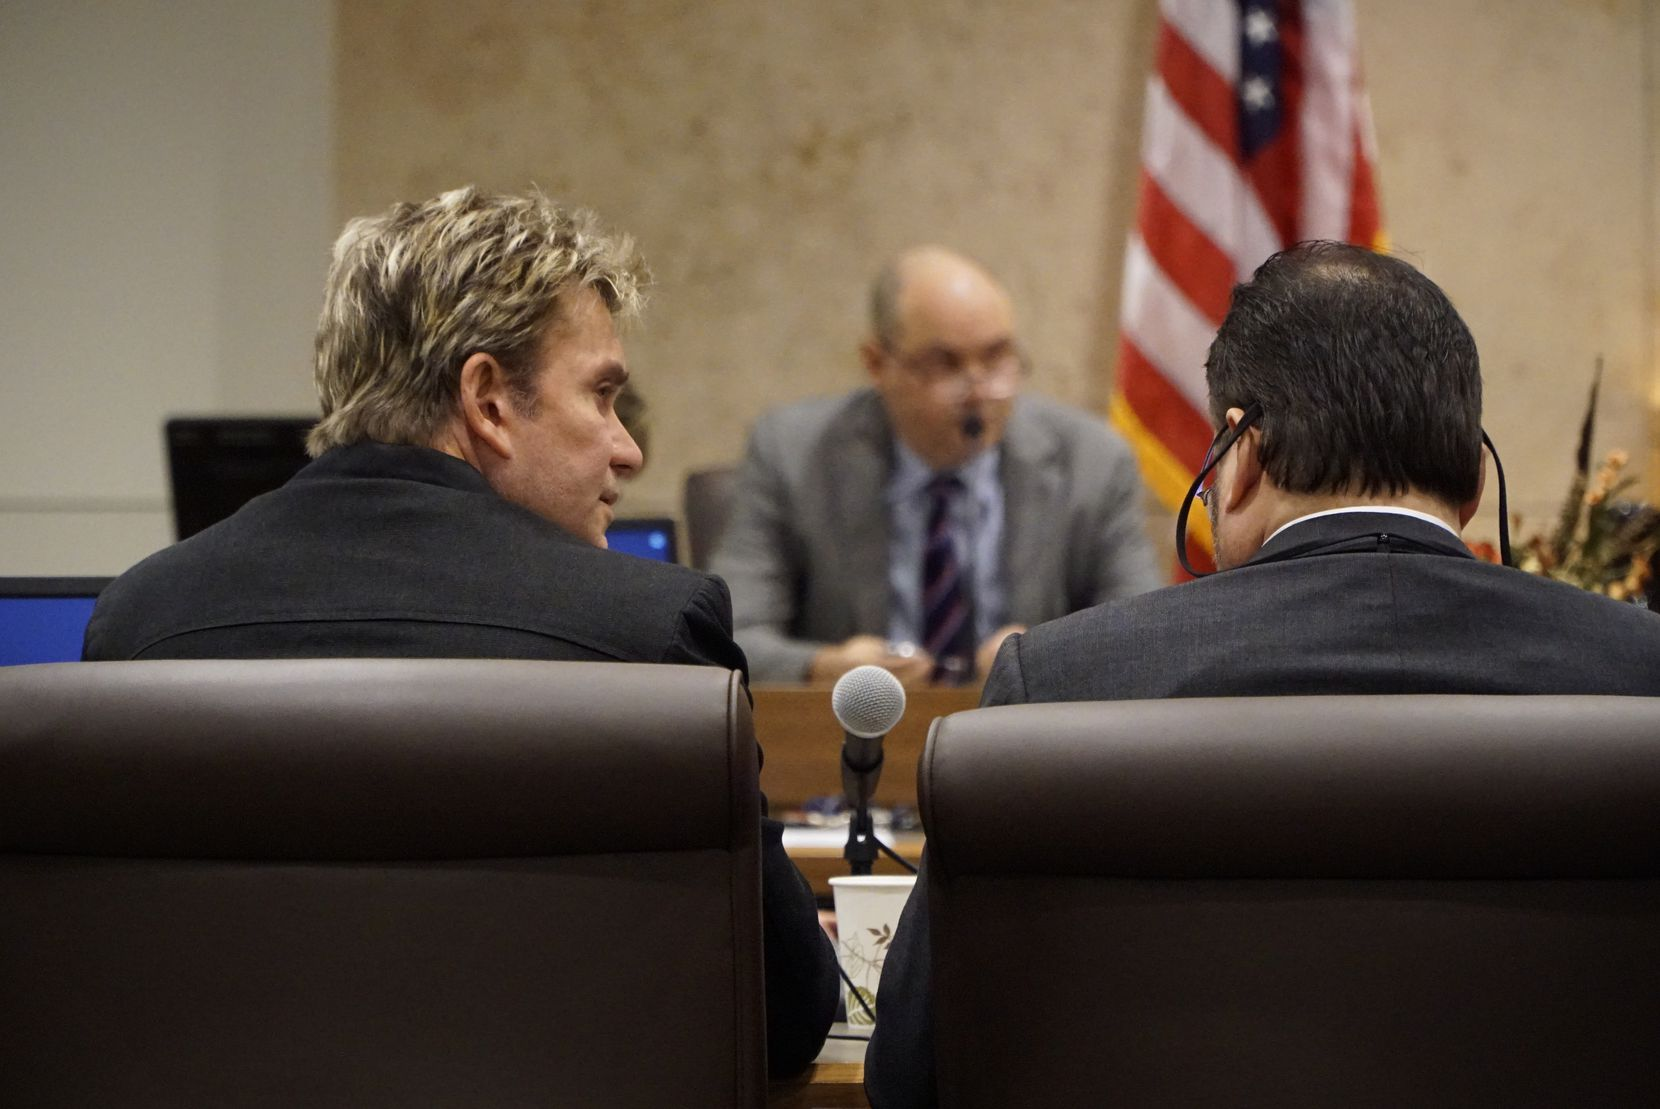 Vic Mignogna, left, sits beside attorney Ty Beard during a hearing in the 141st state District Court at the Tom Vandergriff Civil Courts Building in Fort Worth on Thursday.